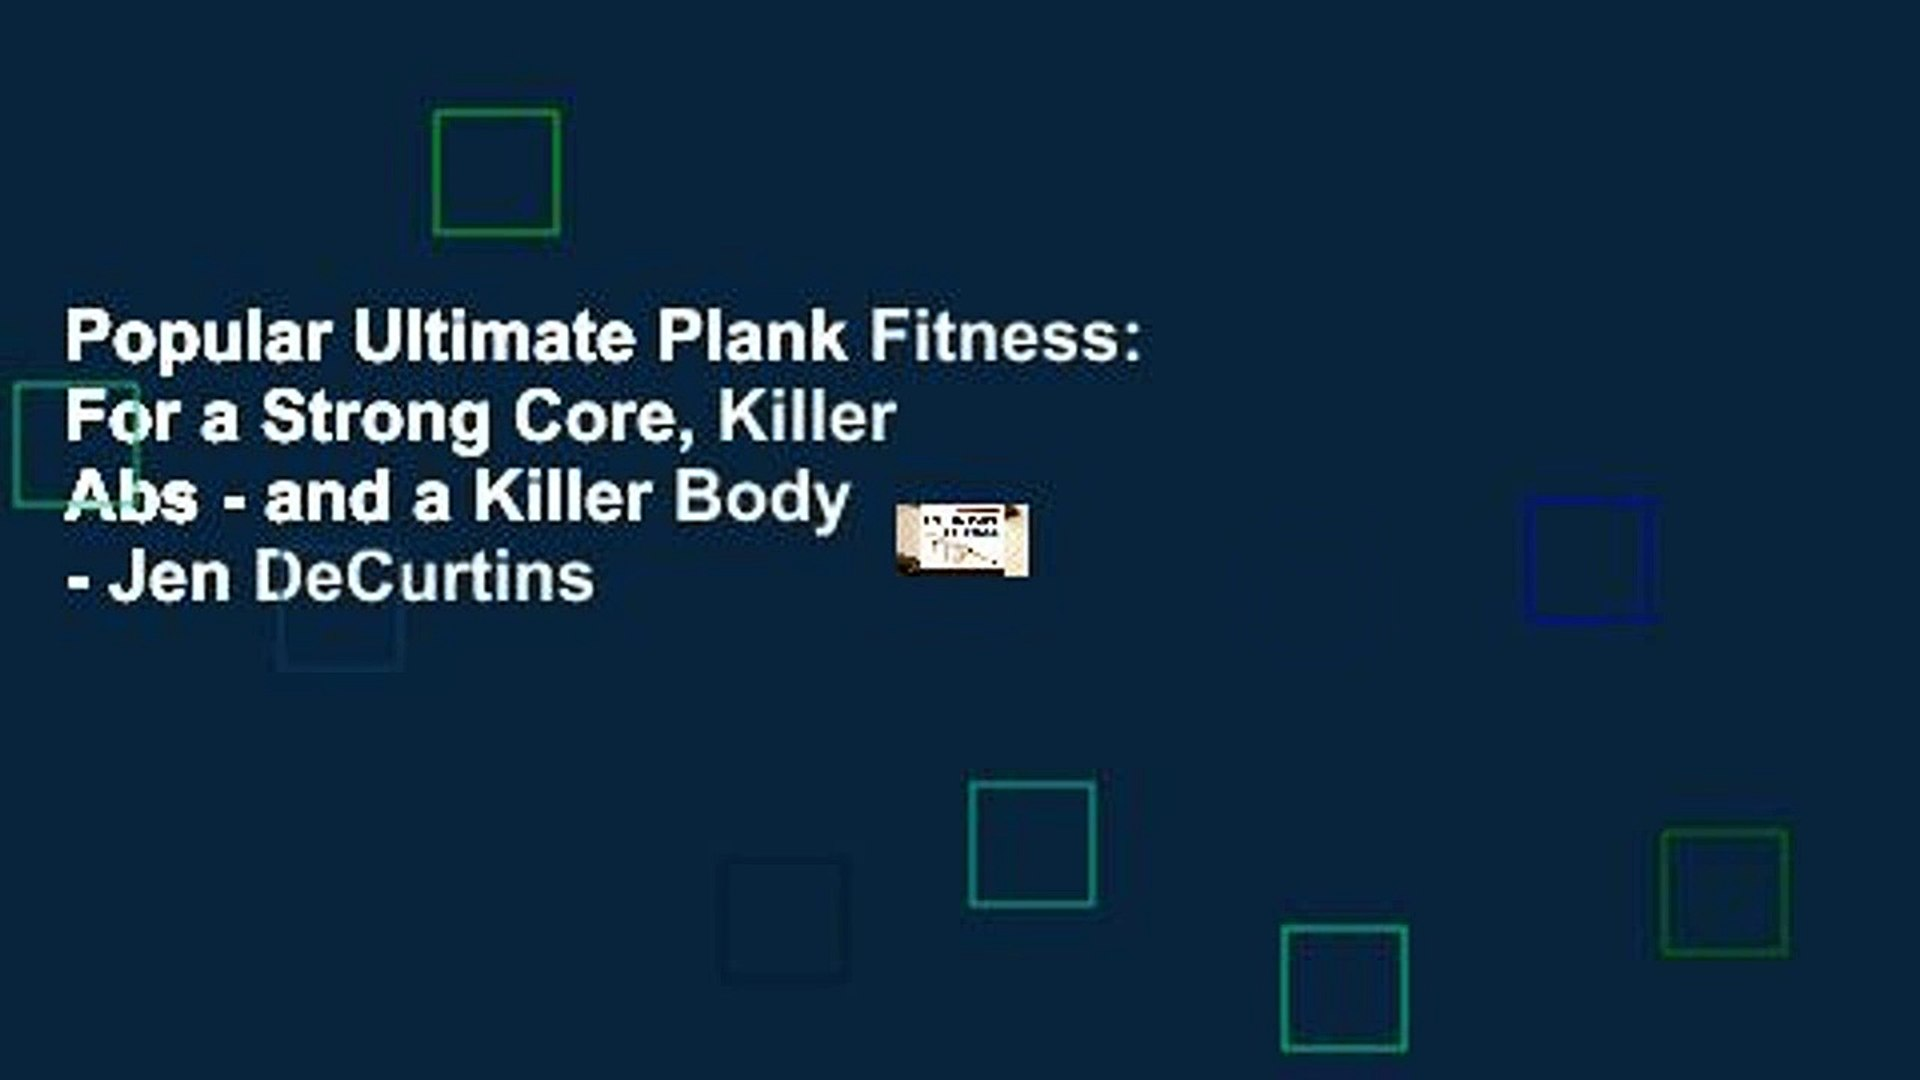 Popular Ultimate Plank Fitness: For a Strong Core, Killer Abs - and a Killer Body - Jen DeCurtins